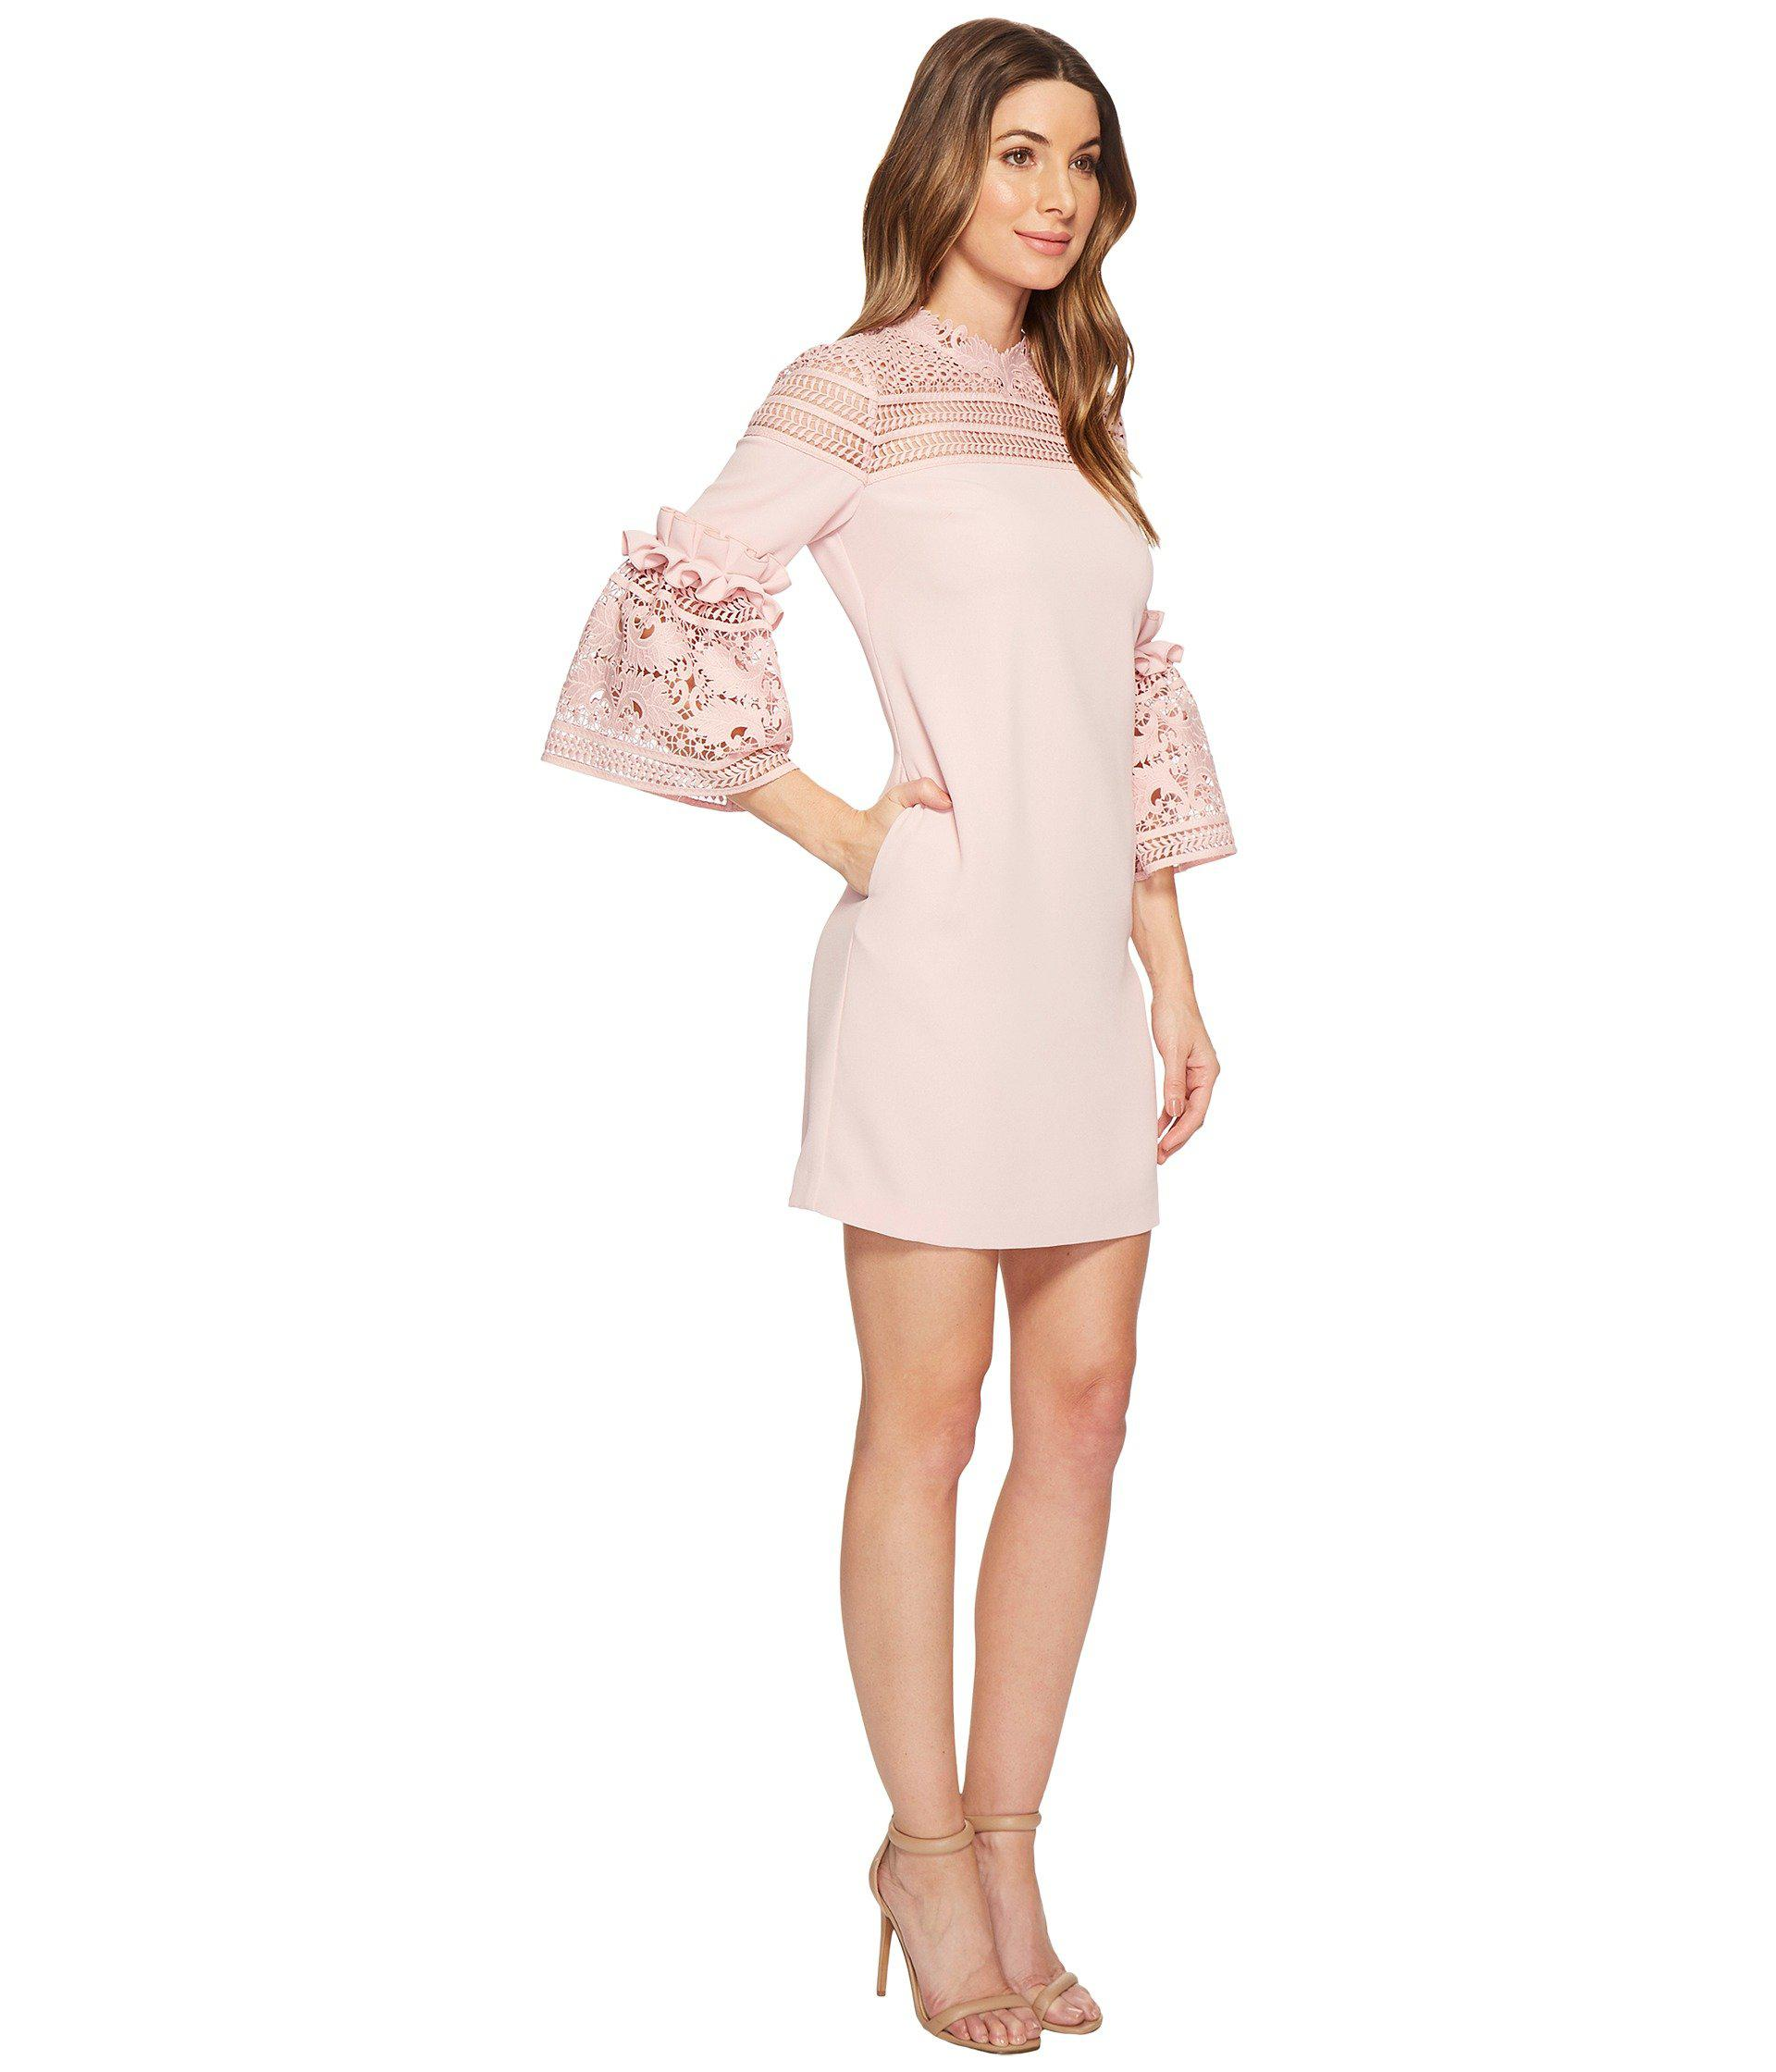 a84cd807c5b70 Ted Baker Lucila Lace Panel Bell Sleeve Tunic in Pink - Lyst